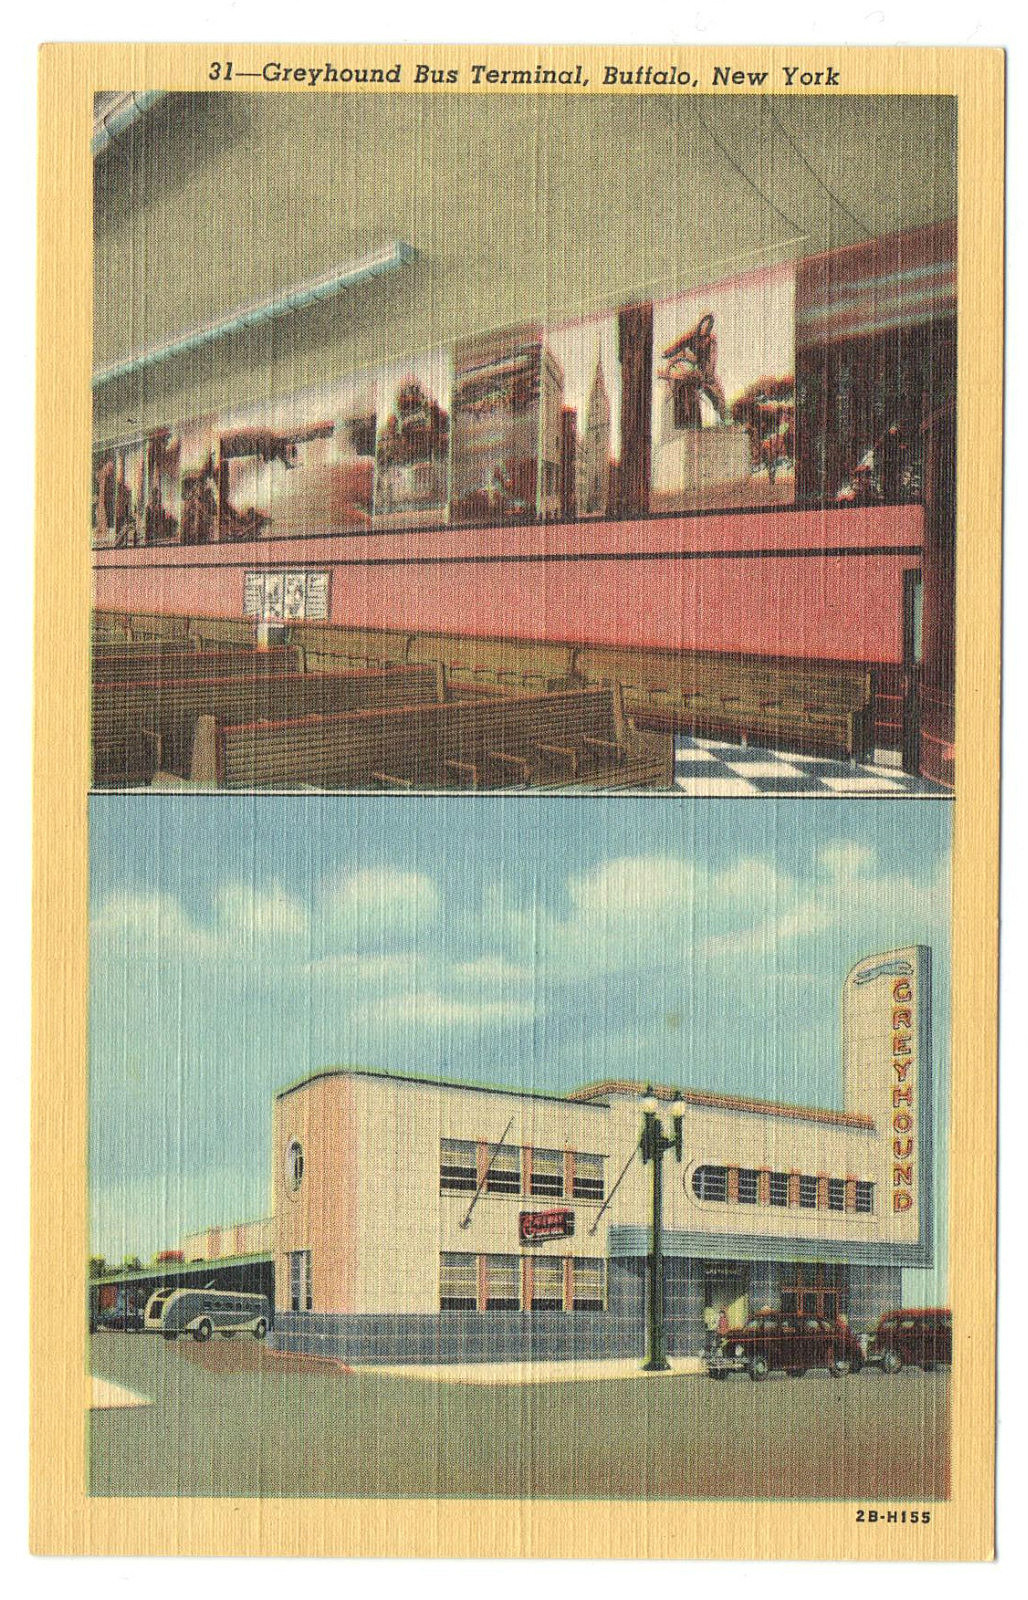 Buffalos Old Greyhound Bus Terminal An Example Of Awesome Building Re Use Buffalo Then And Now